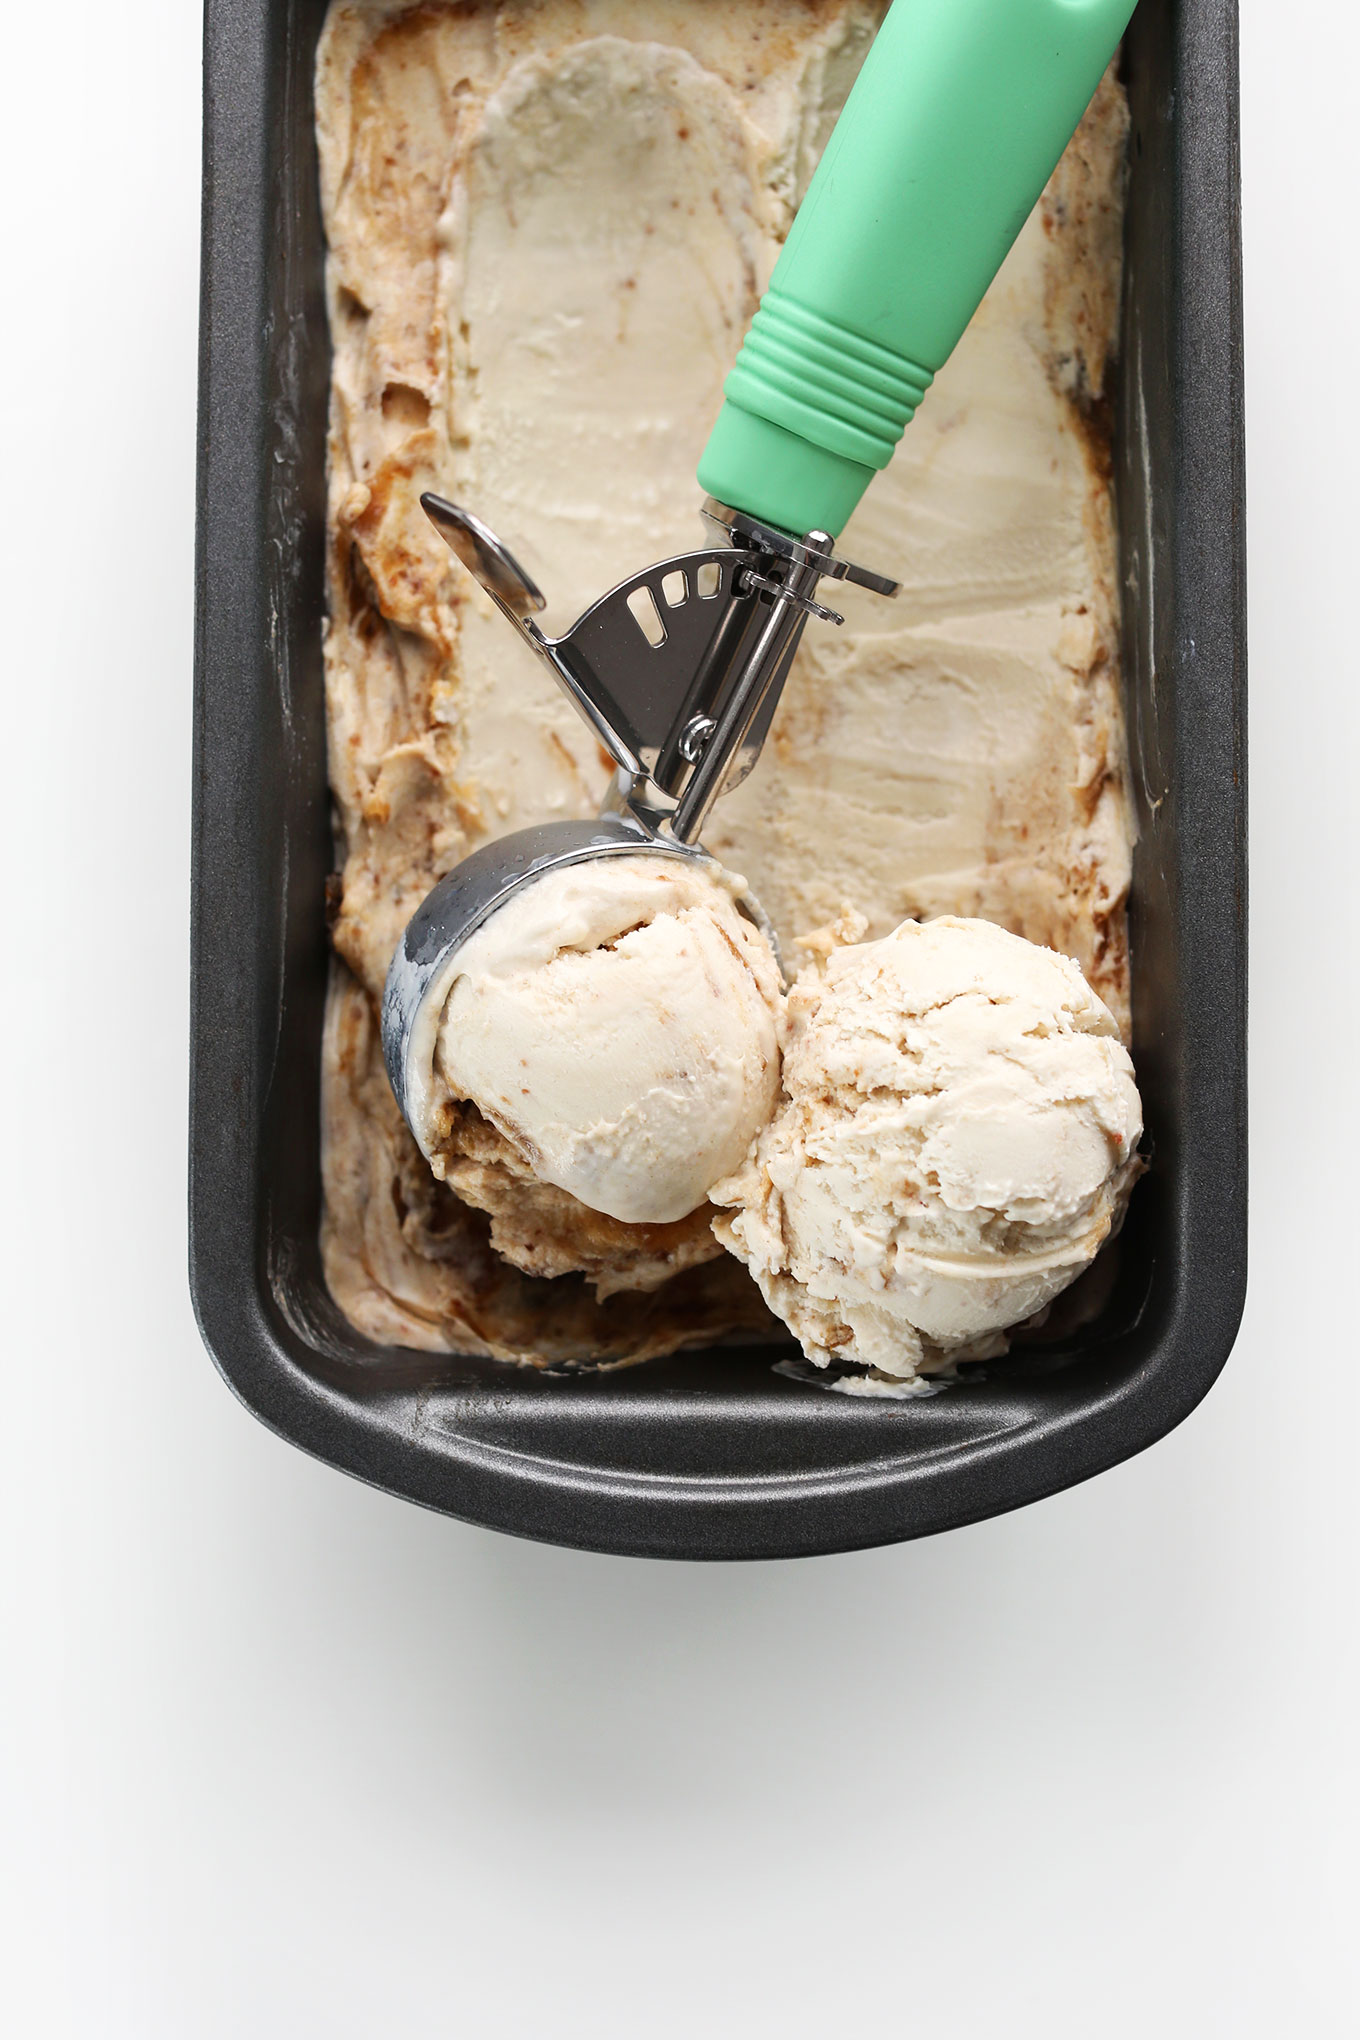 Using an ice cream scooper to grab scoops of creamy Vegan Coconut Caramel Sea Salt Ice Cream